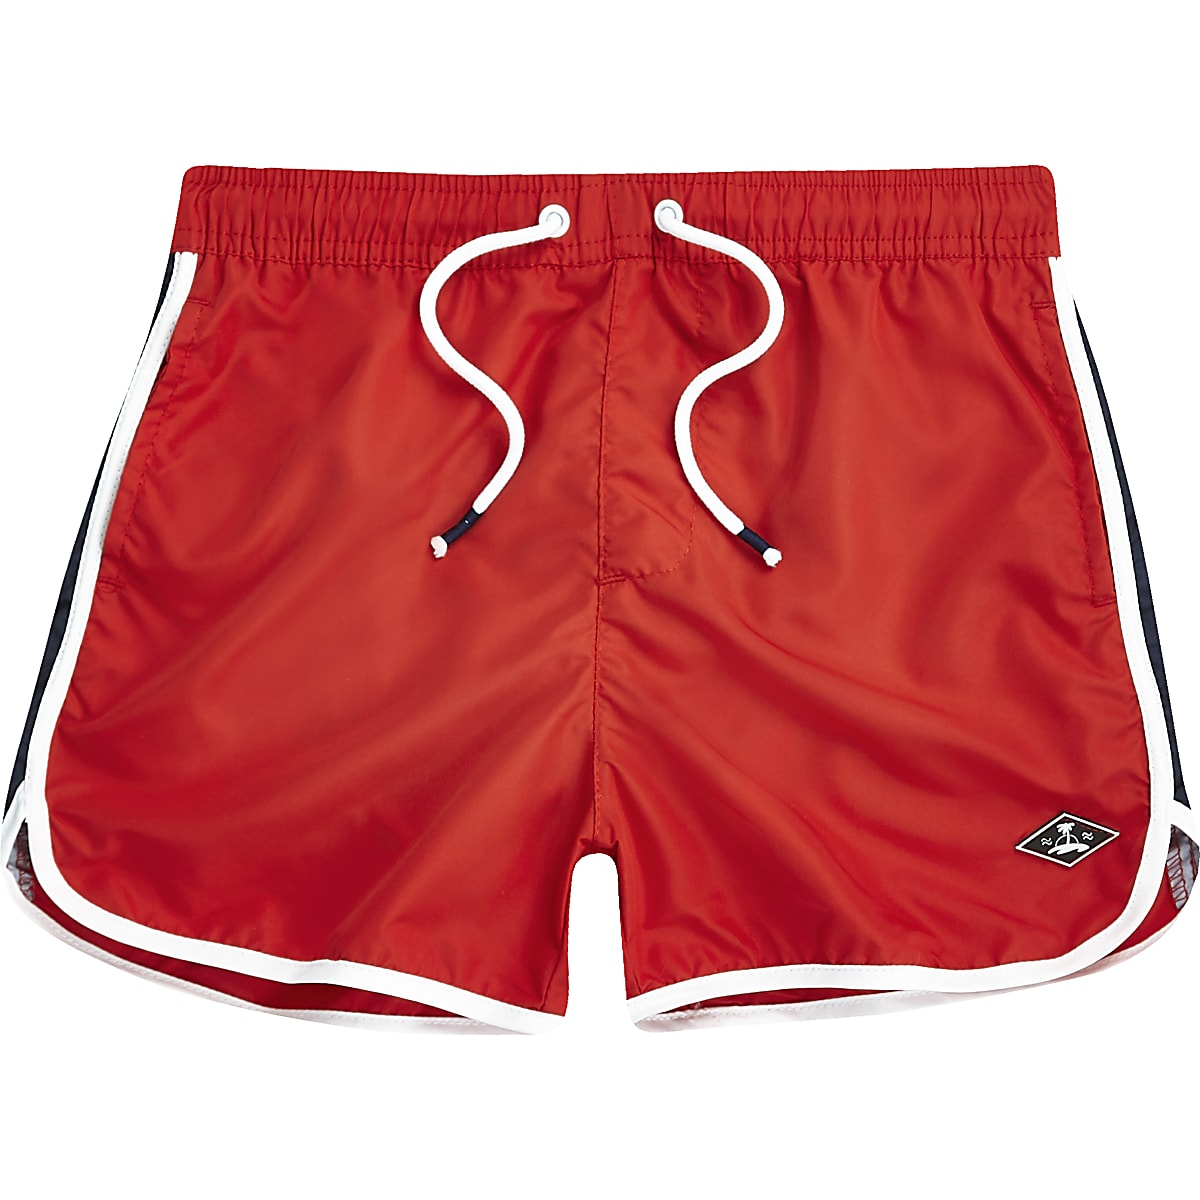 Boys red runner swim shorts